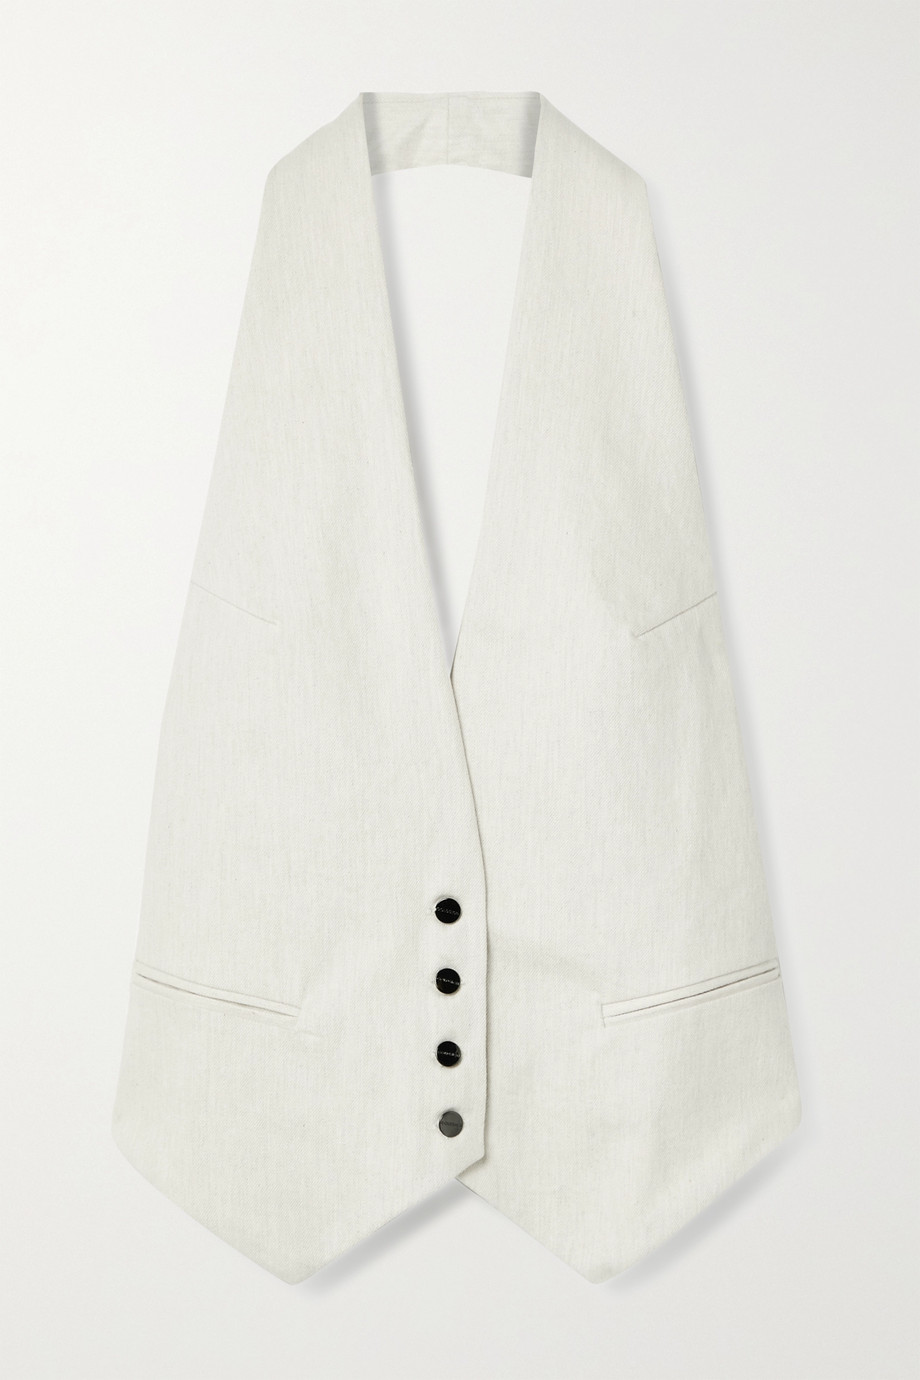 GOLDSIGN Open-back cotton-twill halterneck vest